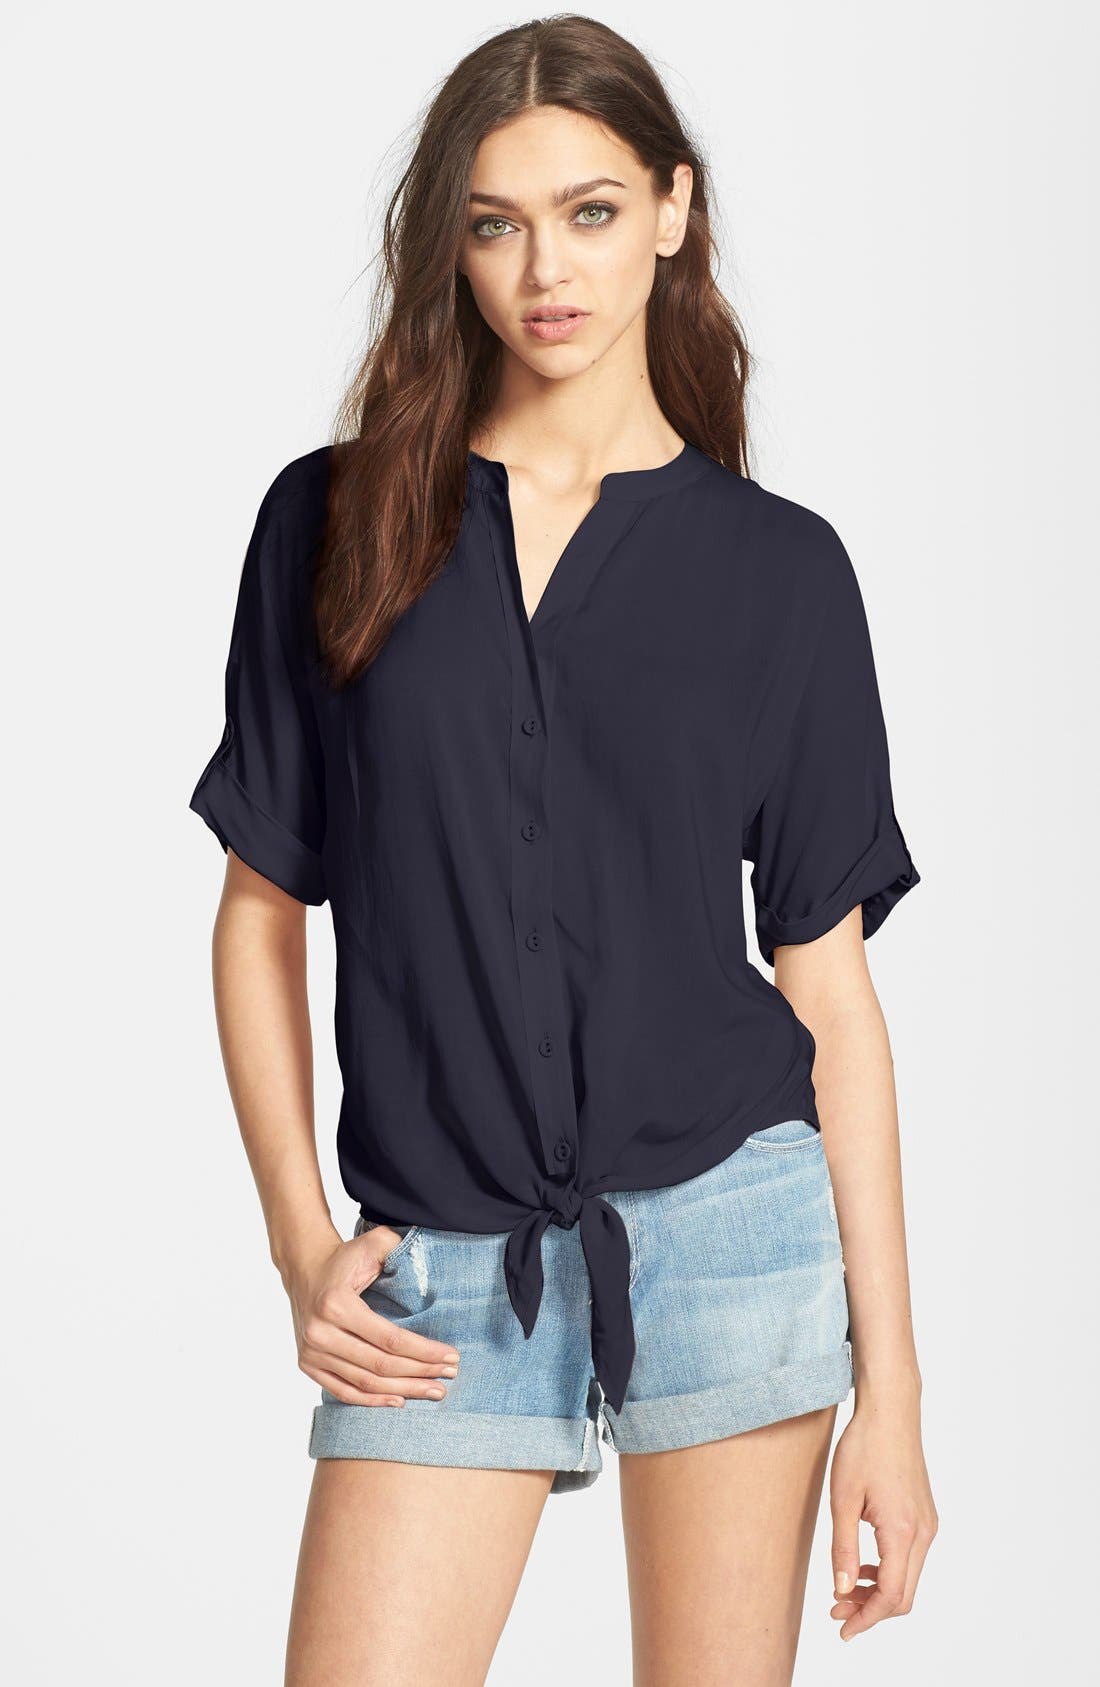 Alternate Image 1 Selected - Paige Denim 'Whitney' Tie Front Shirt